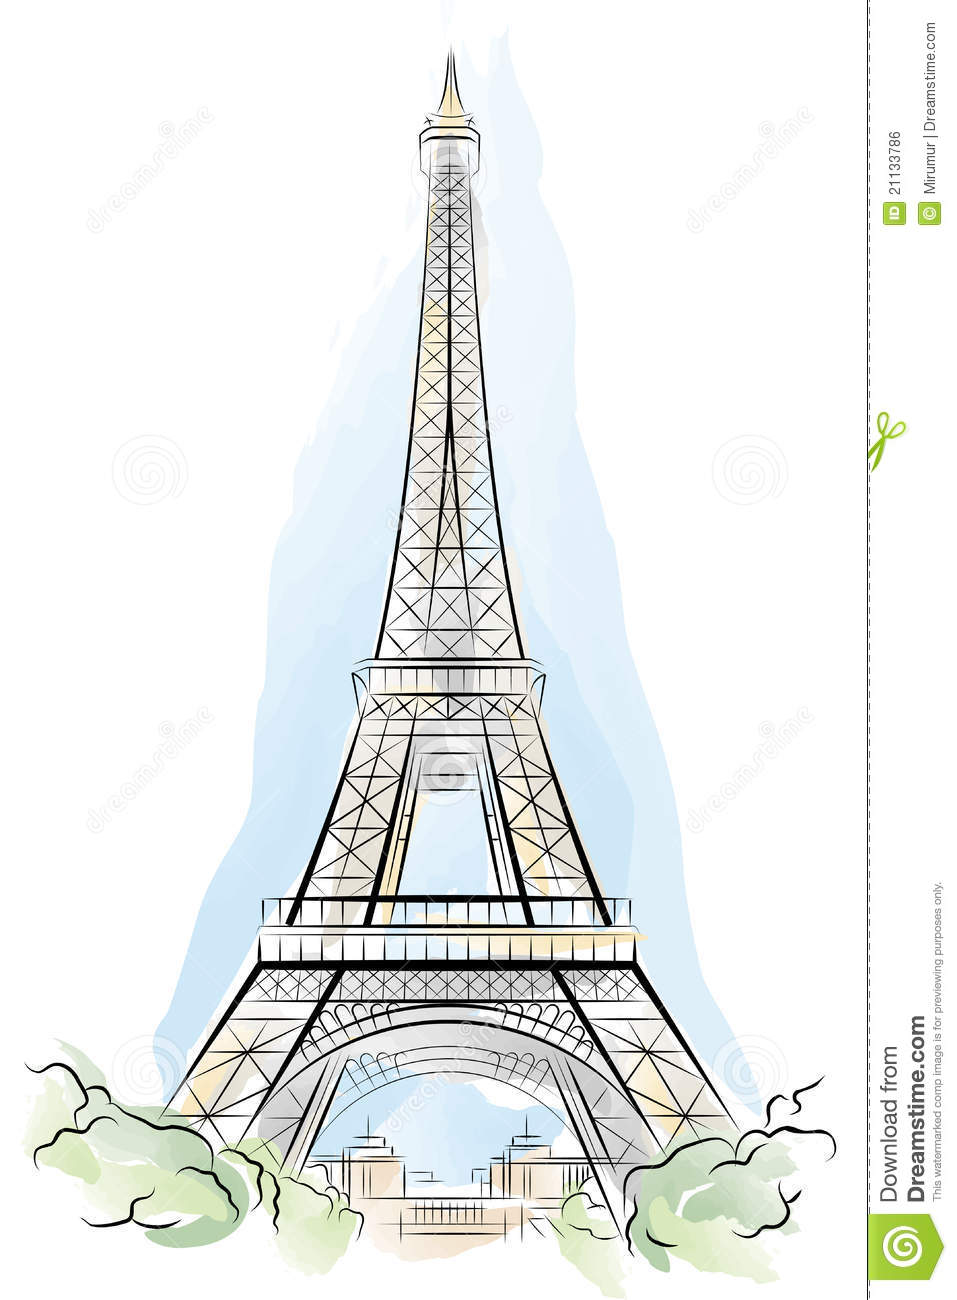 Pin gun printable coloring page on pinterest for Torre enfel